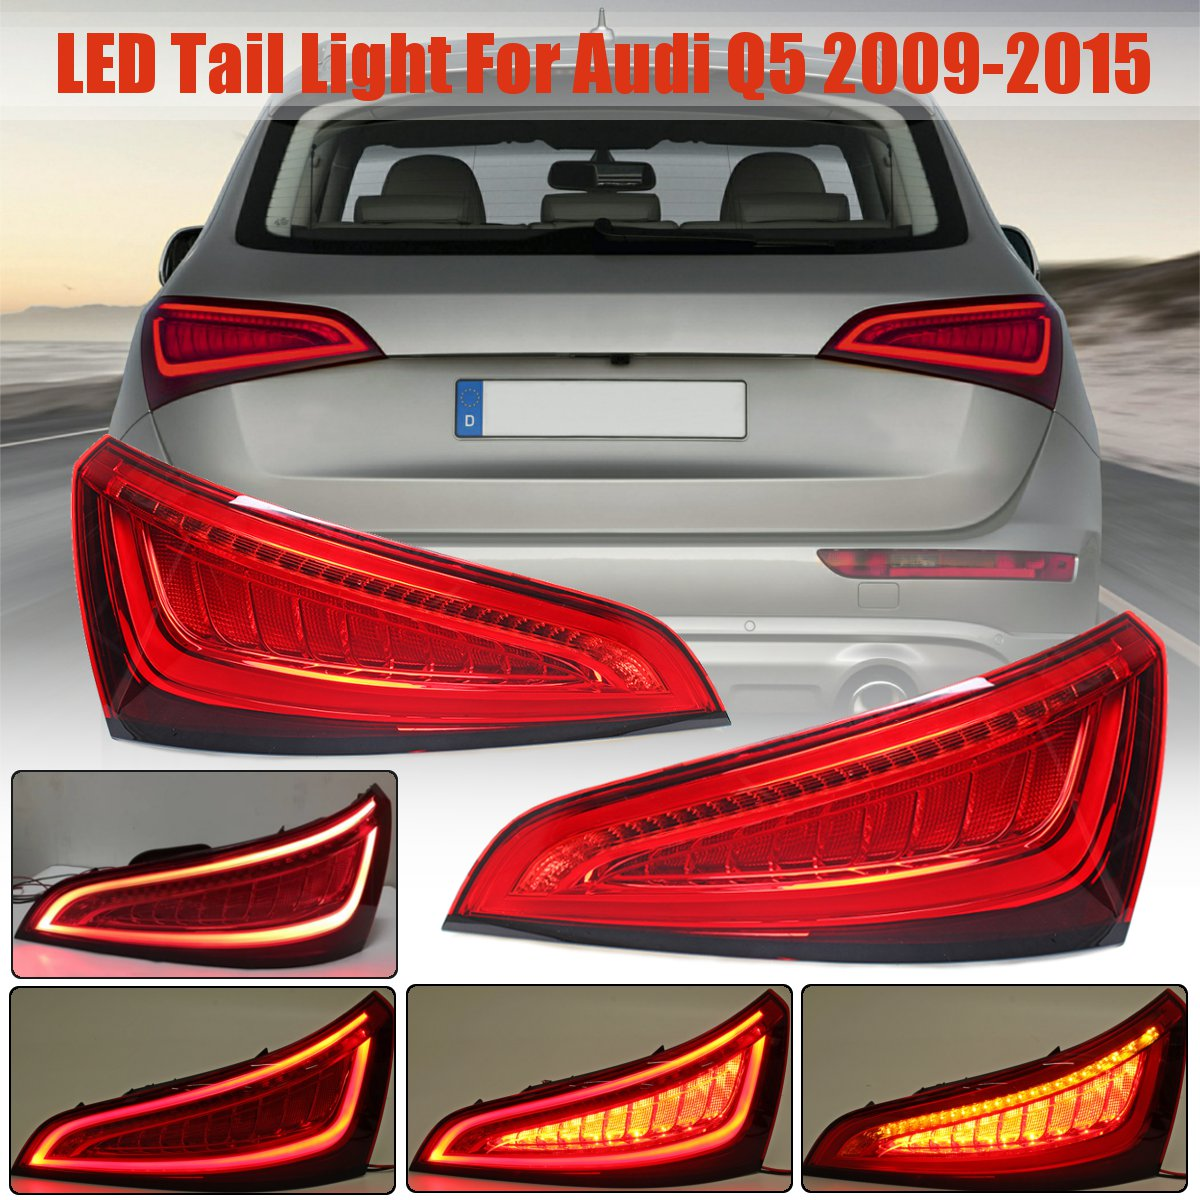 Car Tail Lights >> Buying Guide For Audi Q5 2009 2015 Led Tail Lamp Car Styling